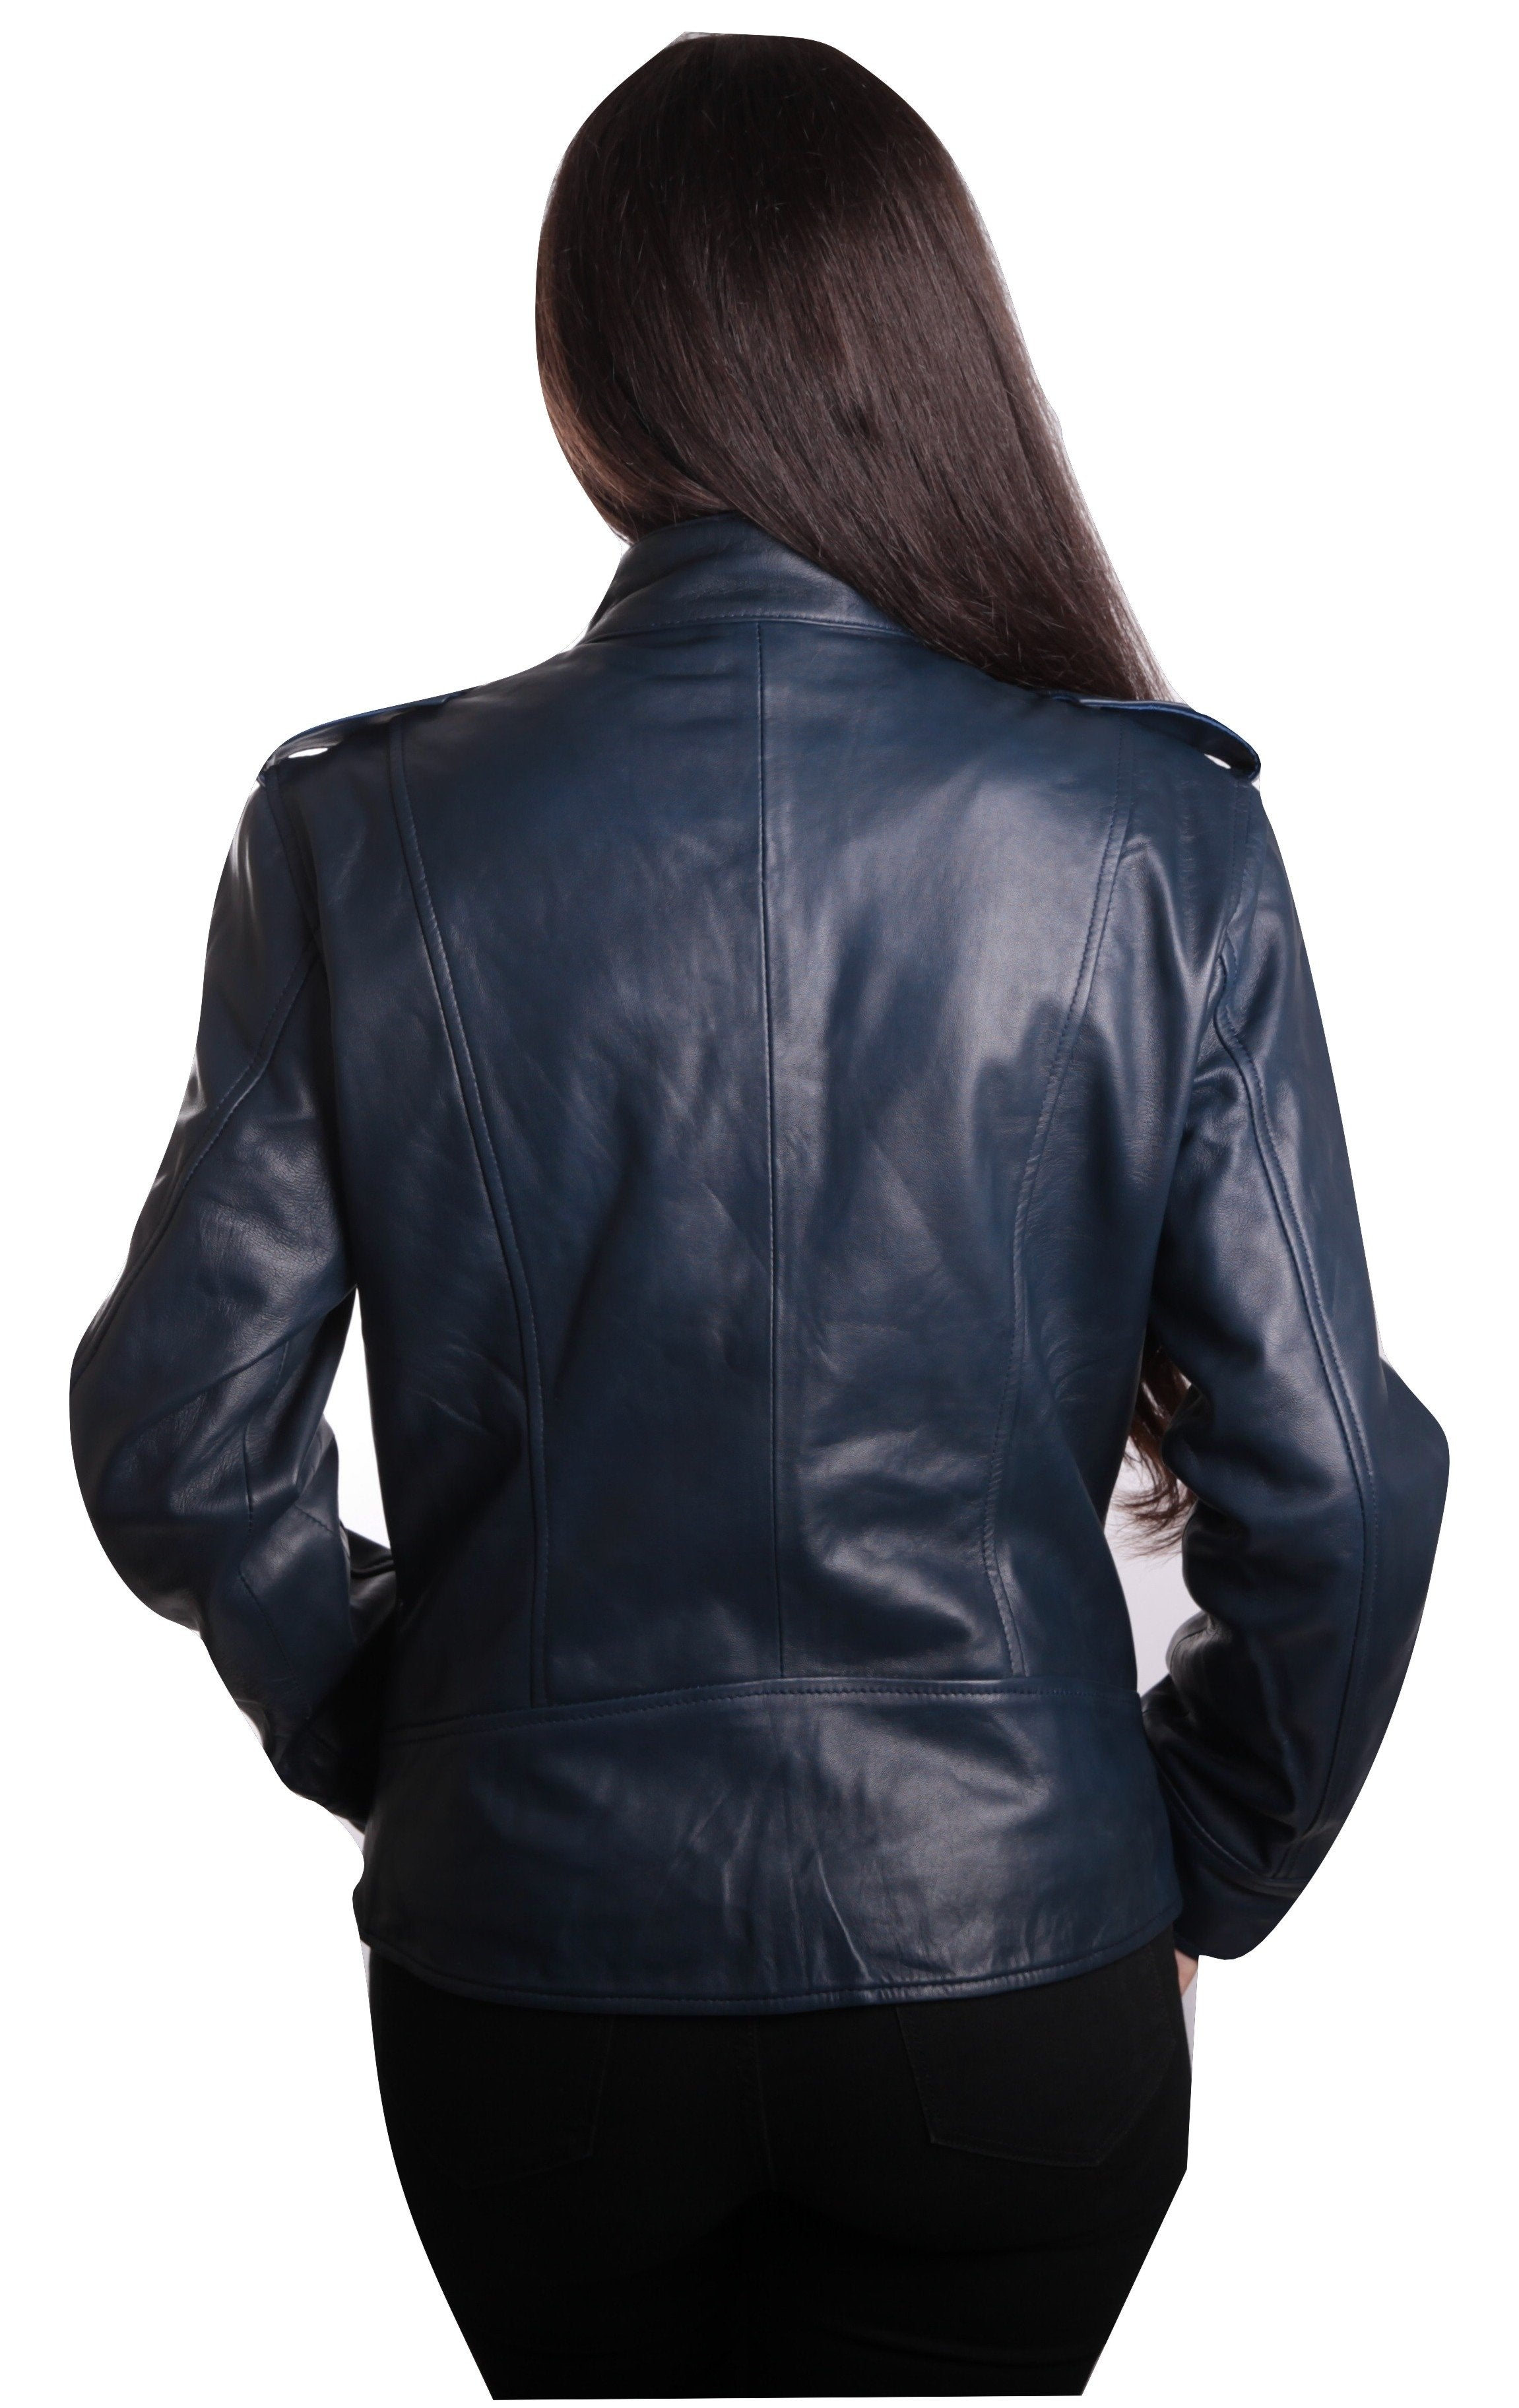 Womens Blue Supple Leather Jacket - fadcloset